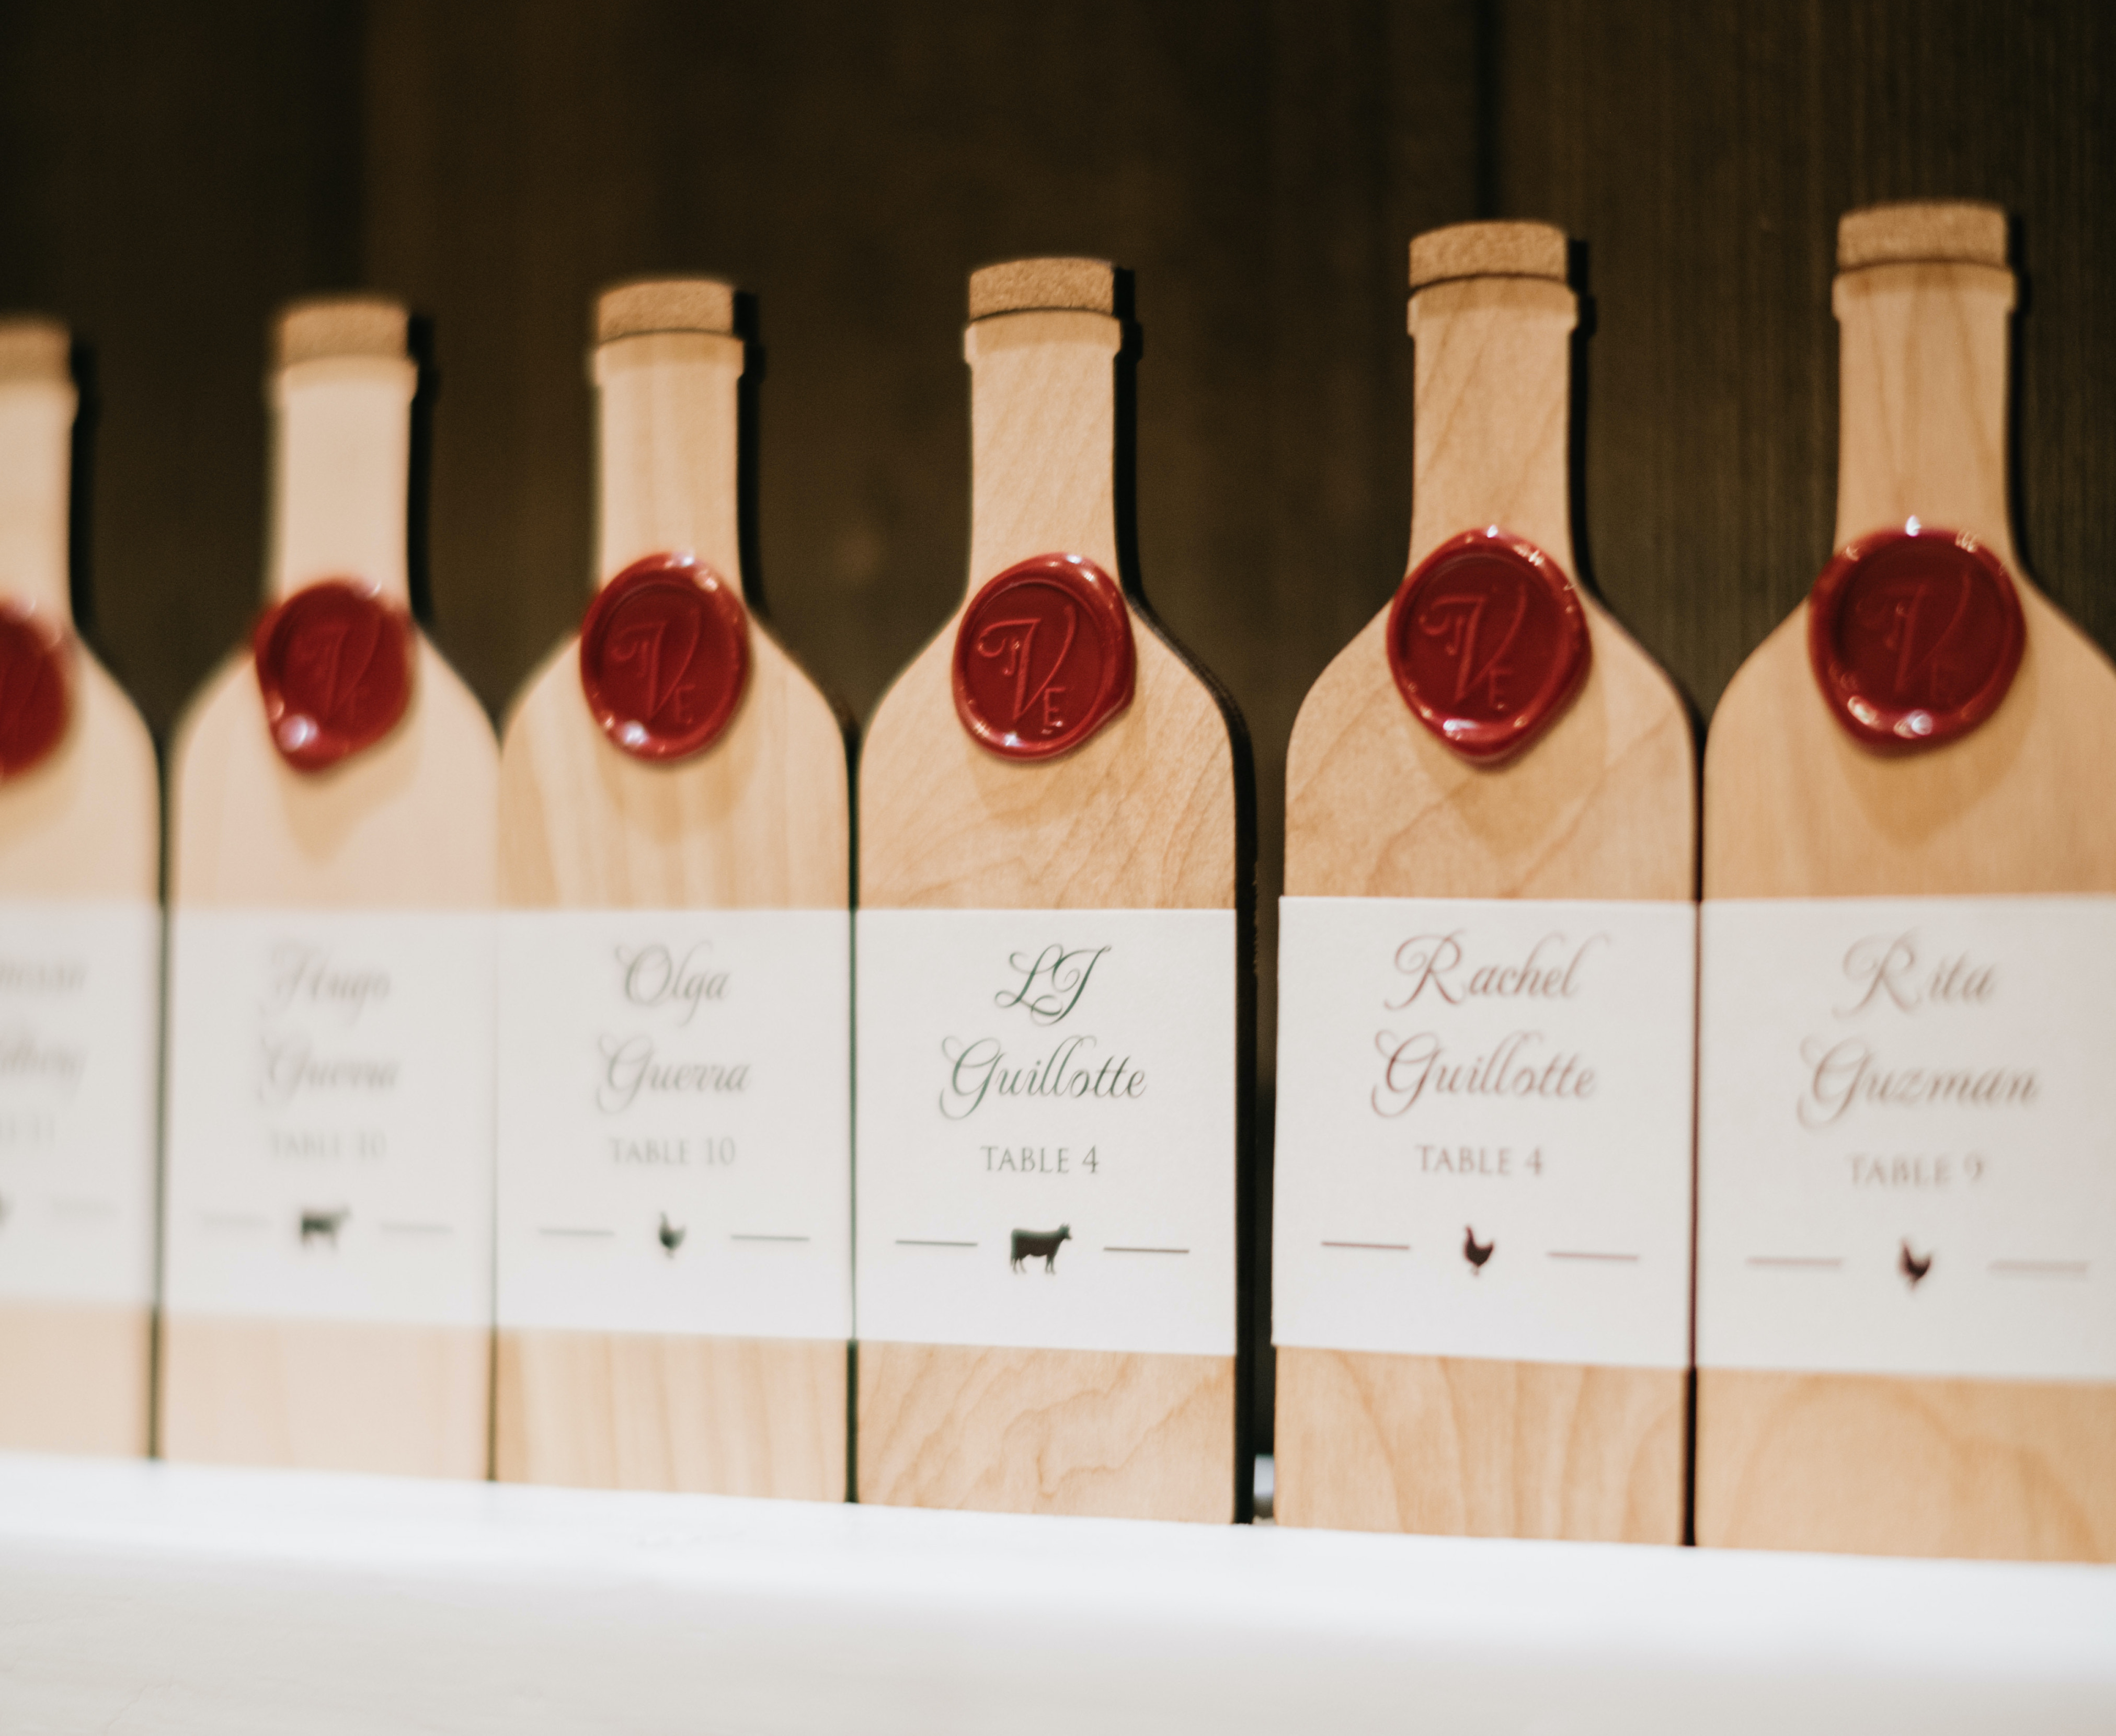 Custom guest list made out of wooden wine bottle cut-outs.